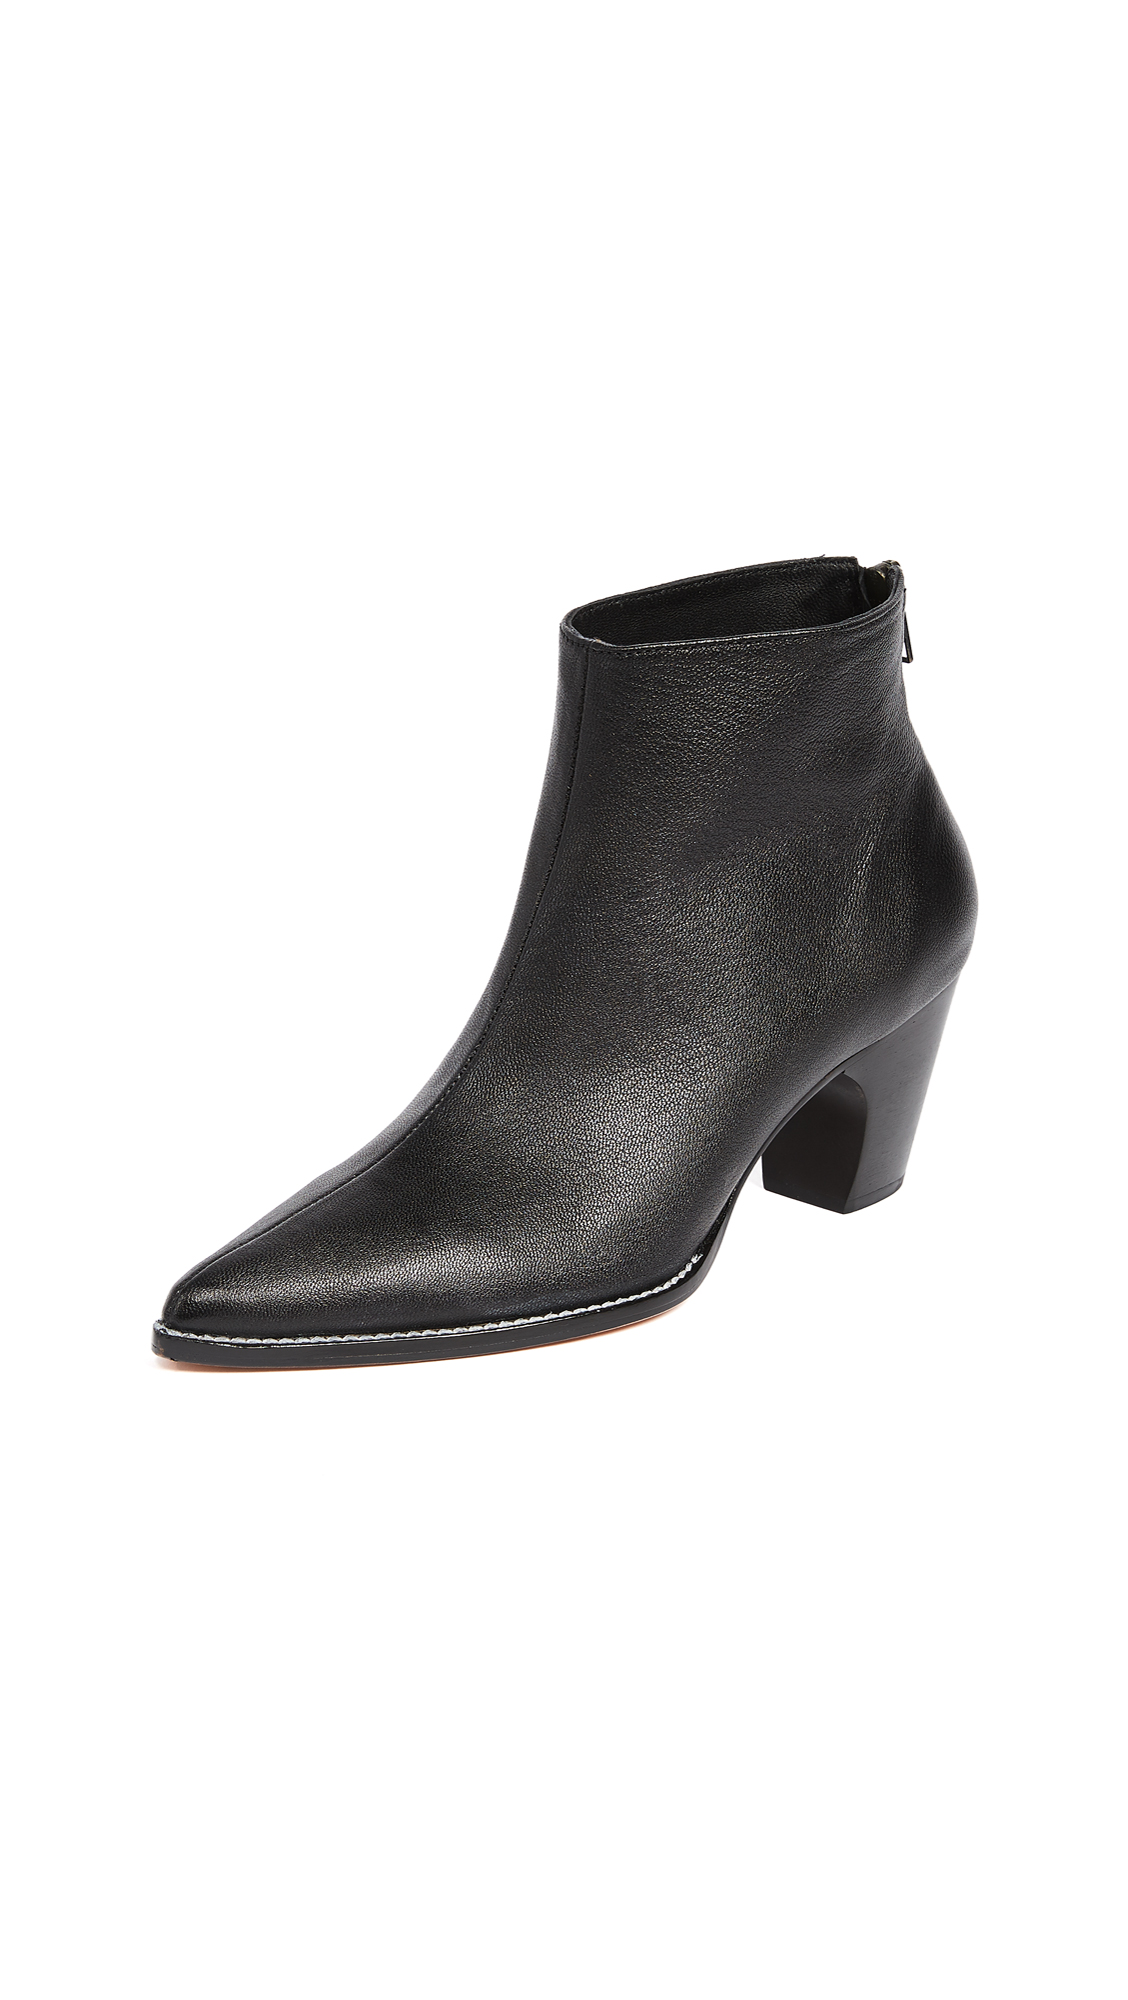 Rachel Comey Sonora Pointed Booties - Black